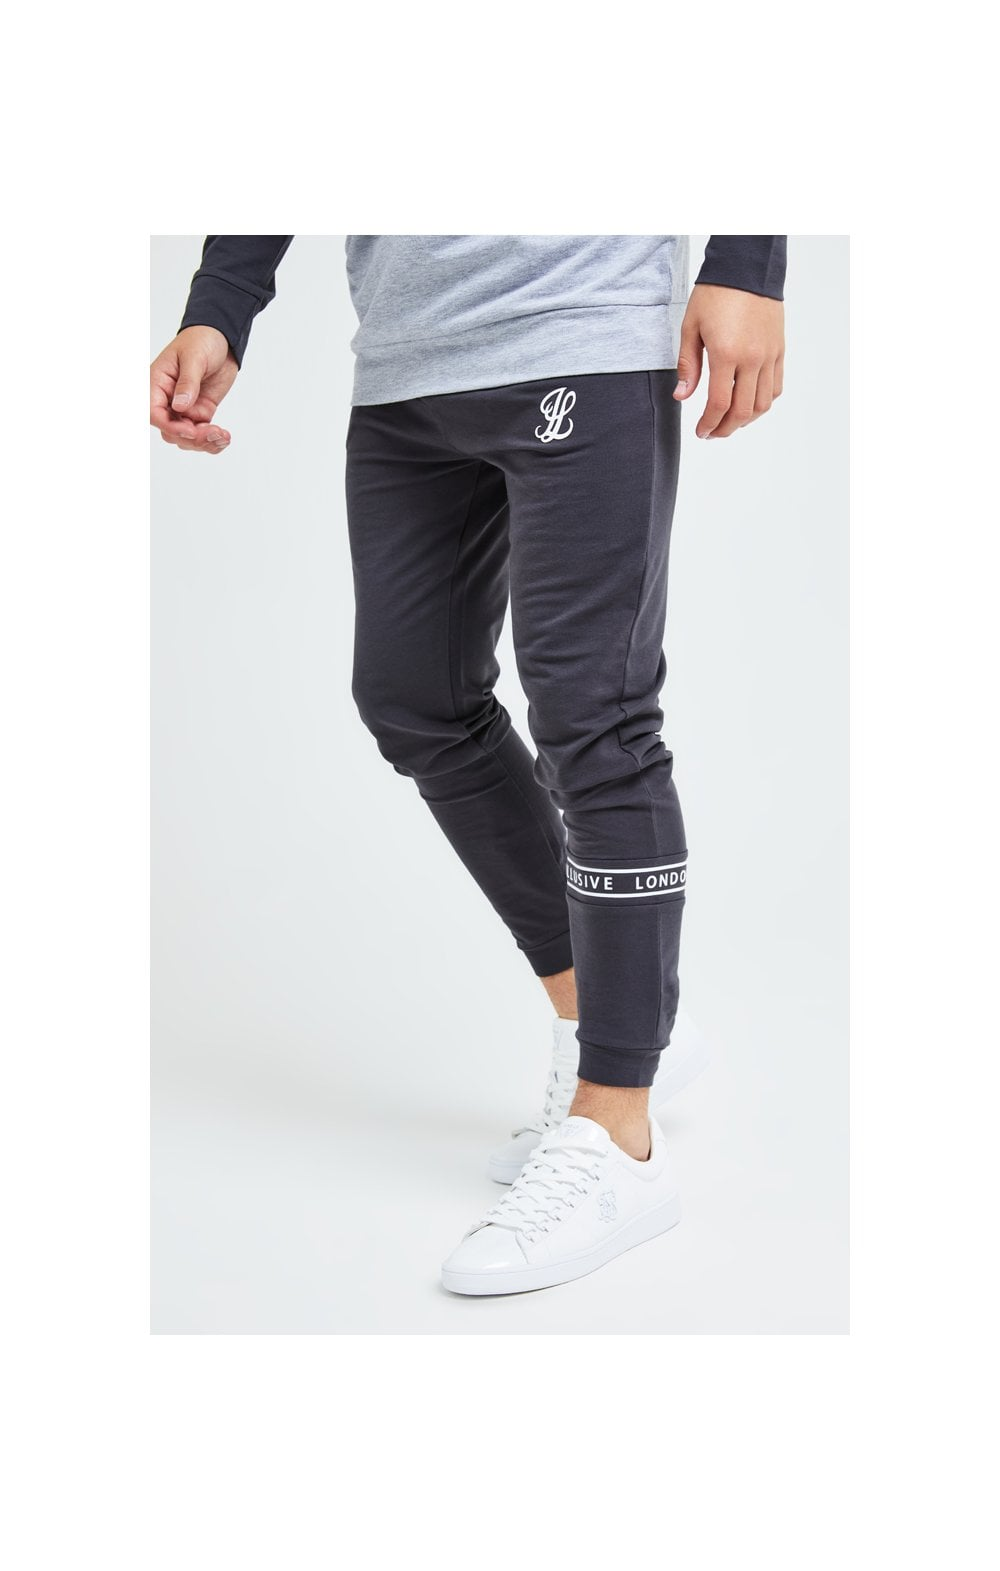 Illusive London Revere Jogger - Dark Grey & Light Grey Marl